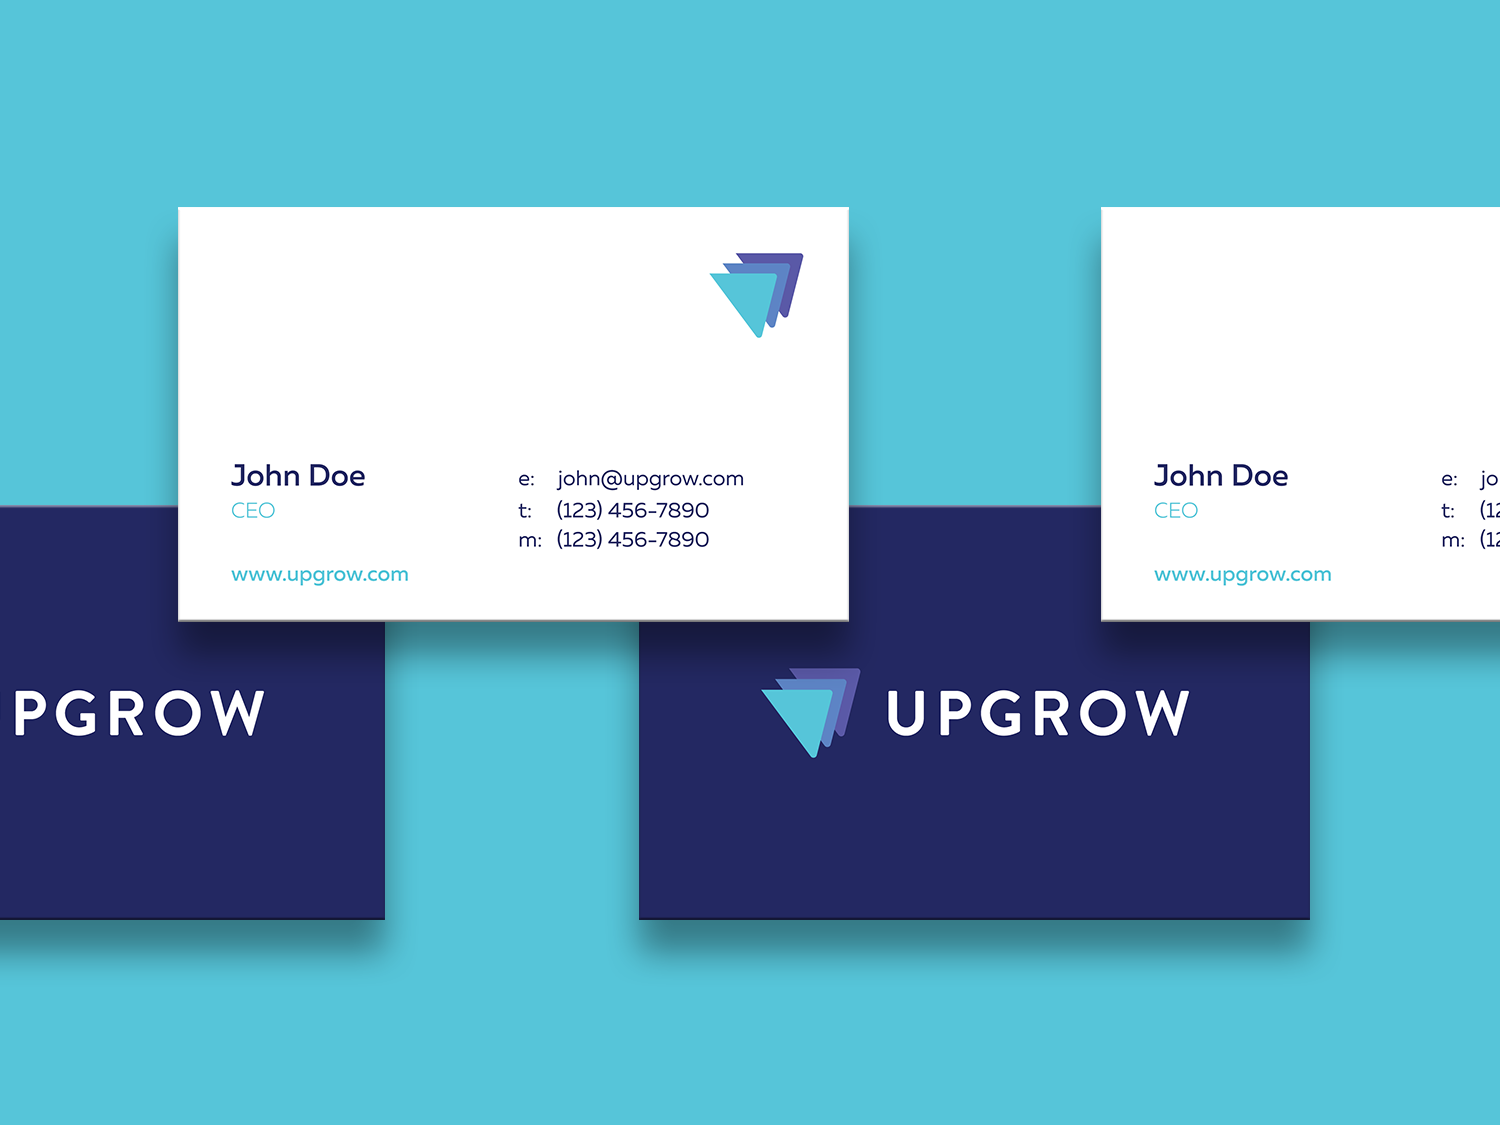 Upgrow businesscard